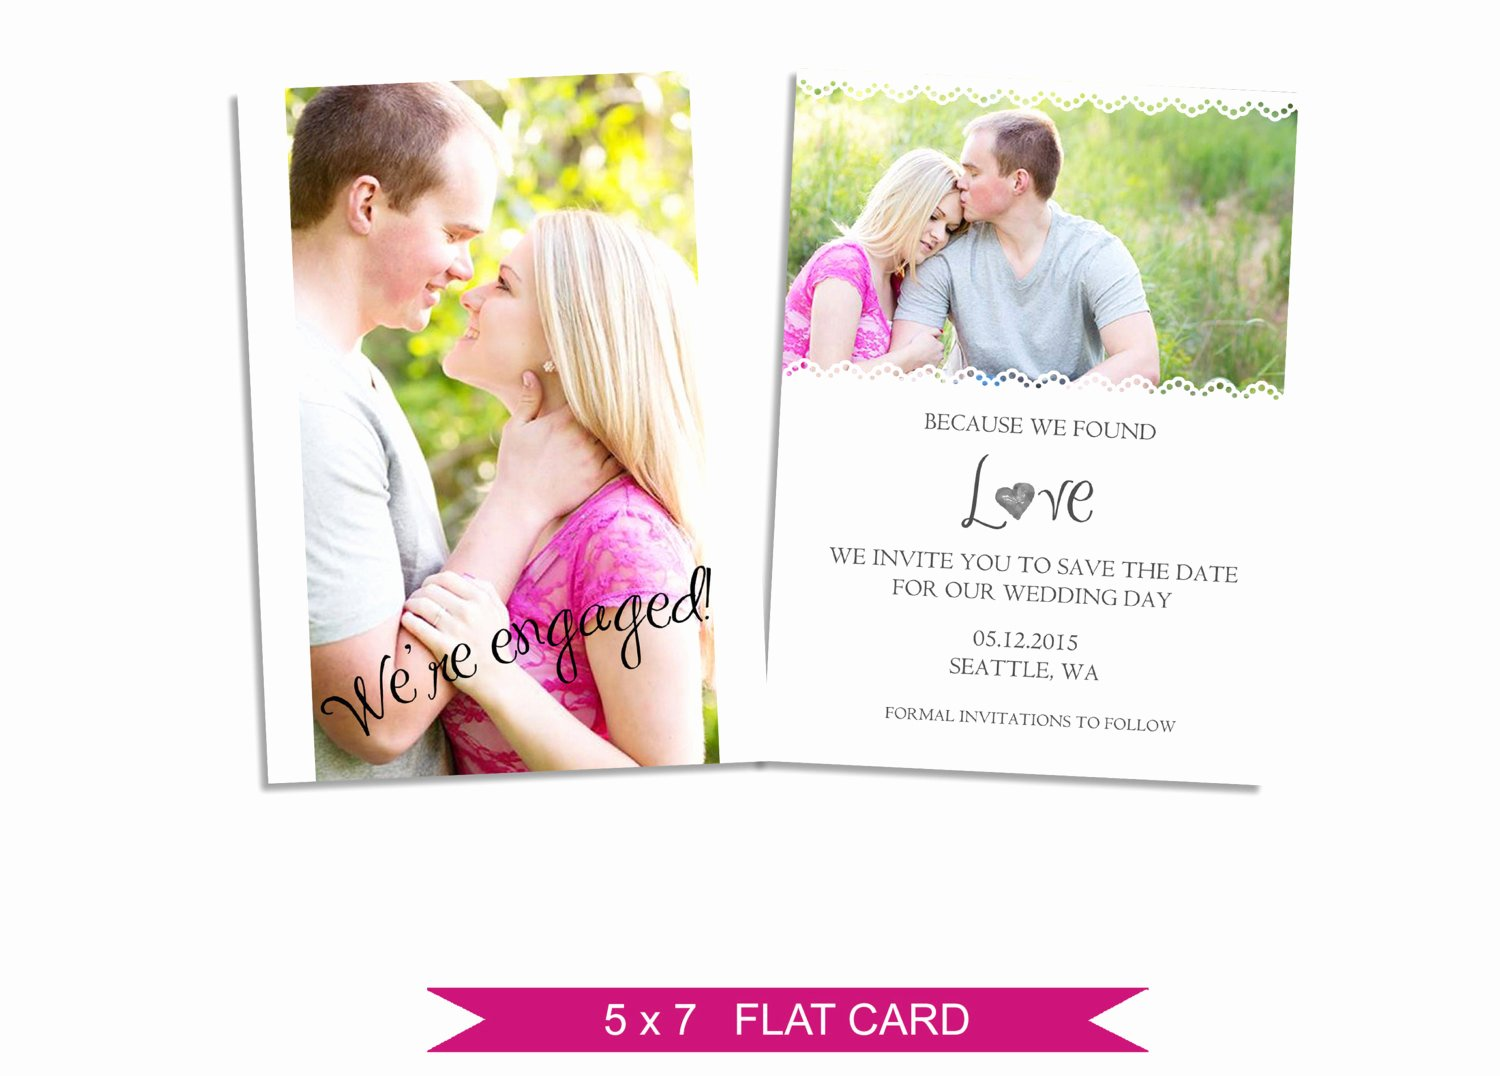 Save the Date Templates Photoshop Fresh Save the Date Card Shop Template Instant Download